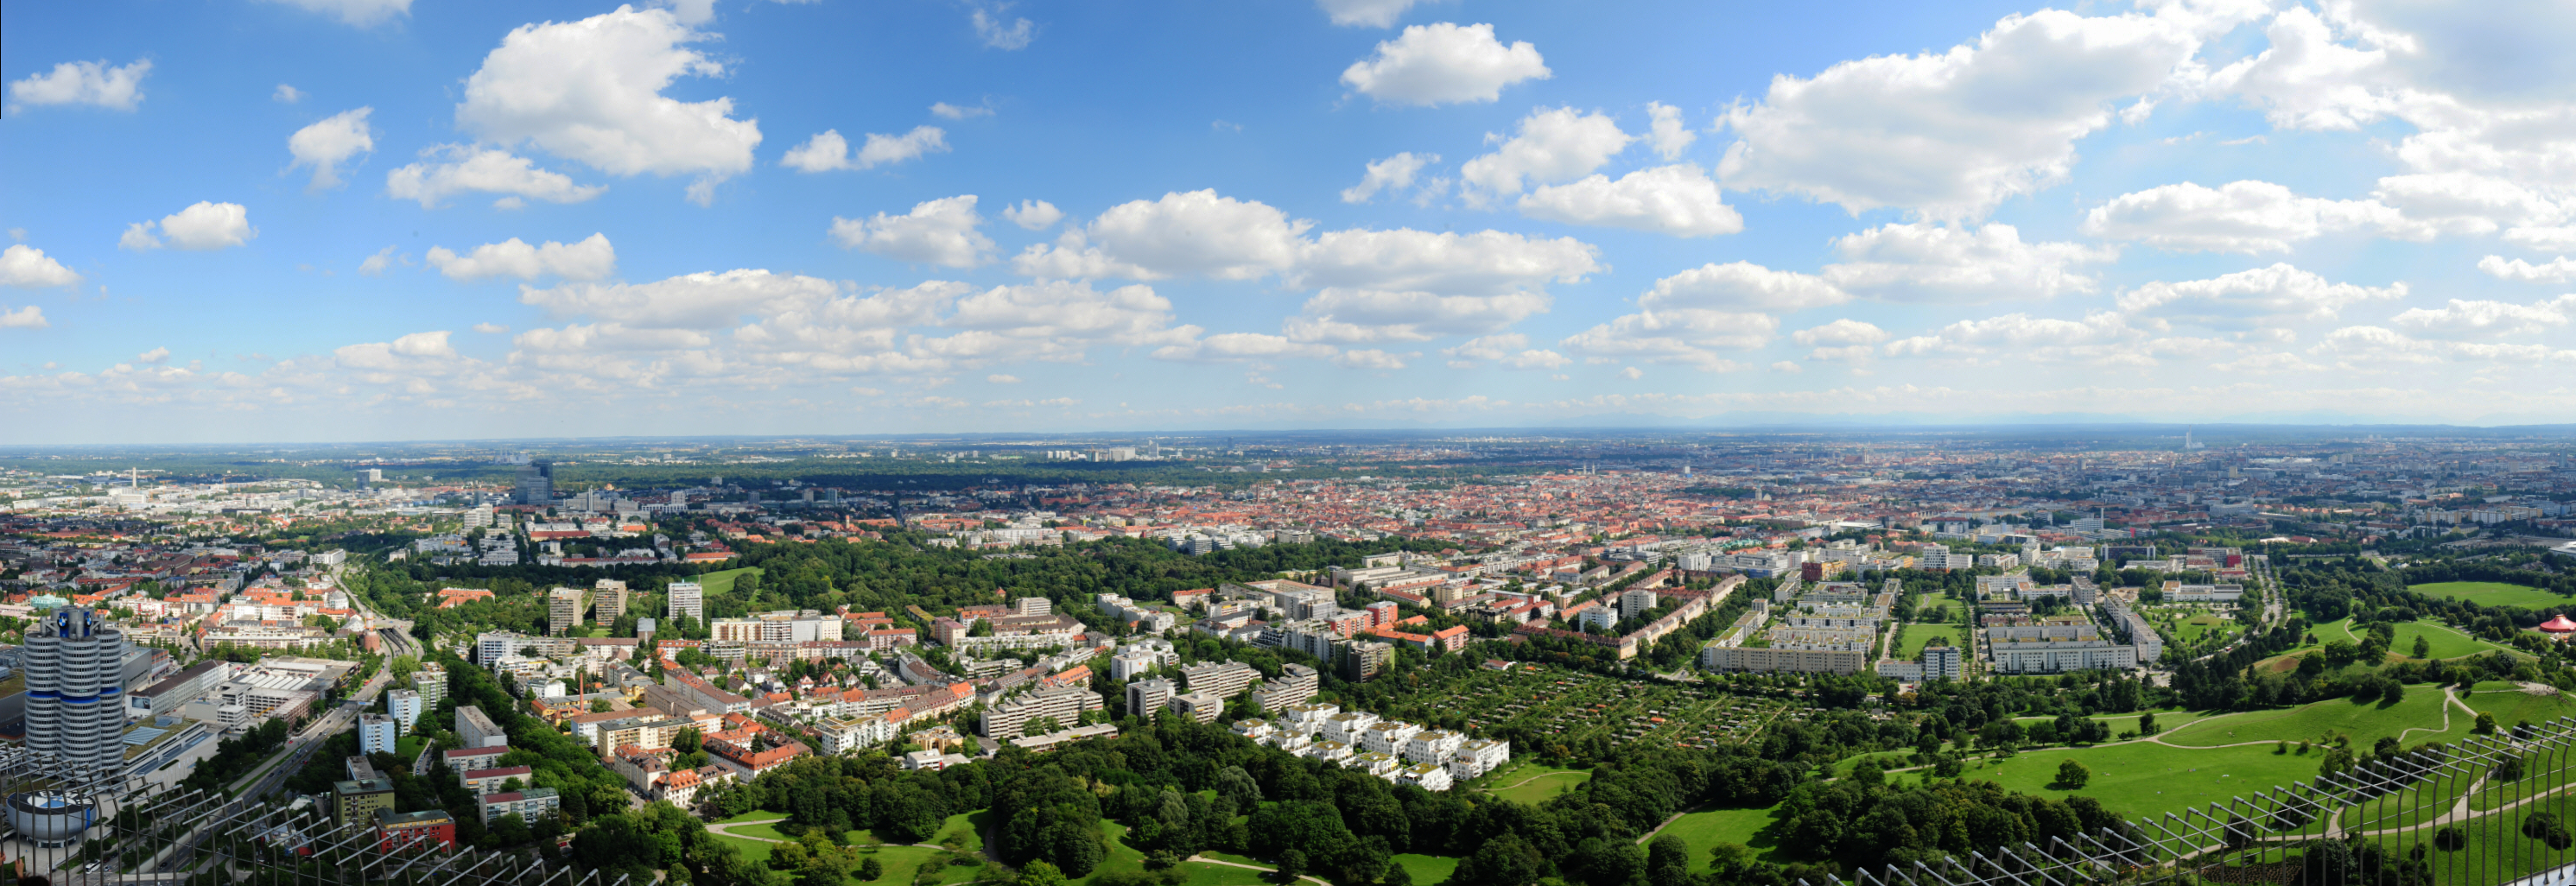 View from the Olympic tower, Munich